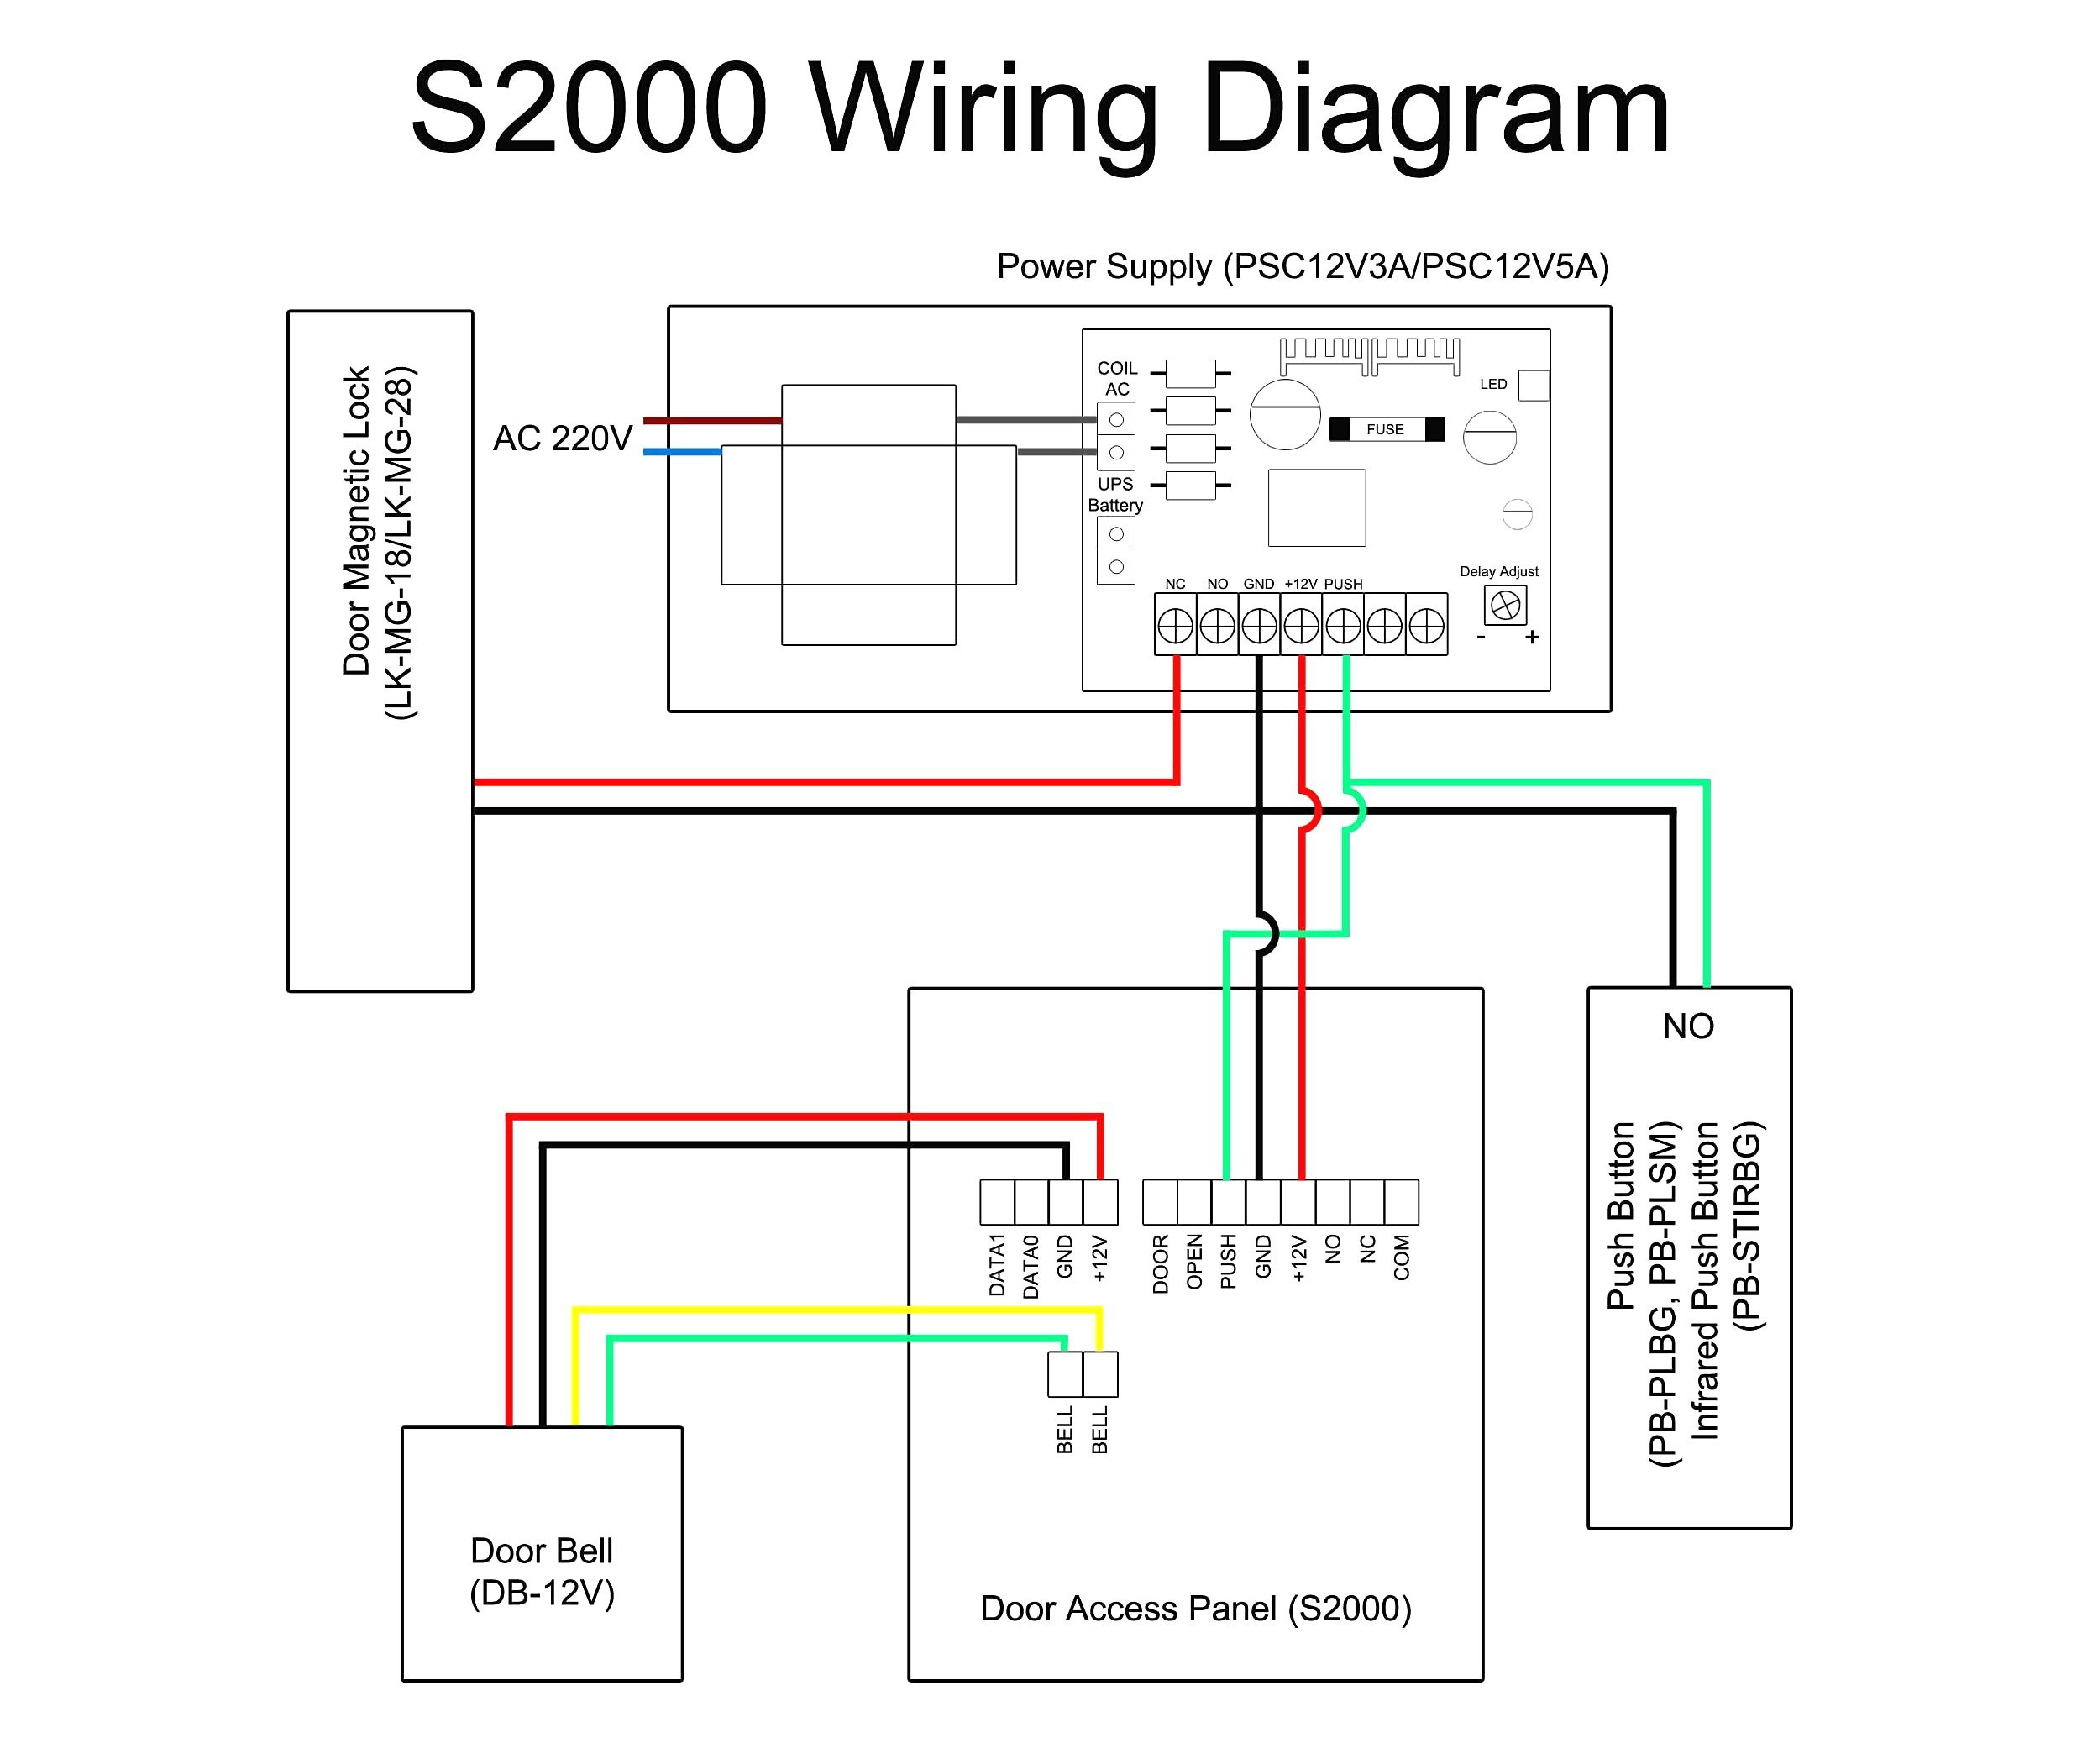 door access control wiring diagram Collection-Wiring Diagram Security System Best Wiring Diagram for Electric Door Bell Fresh Bunker Hill Security 3-l